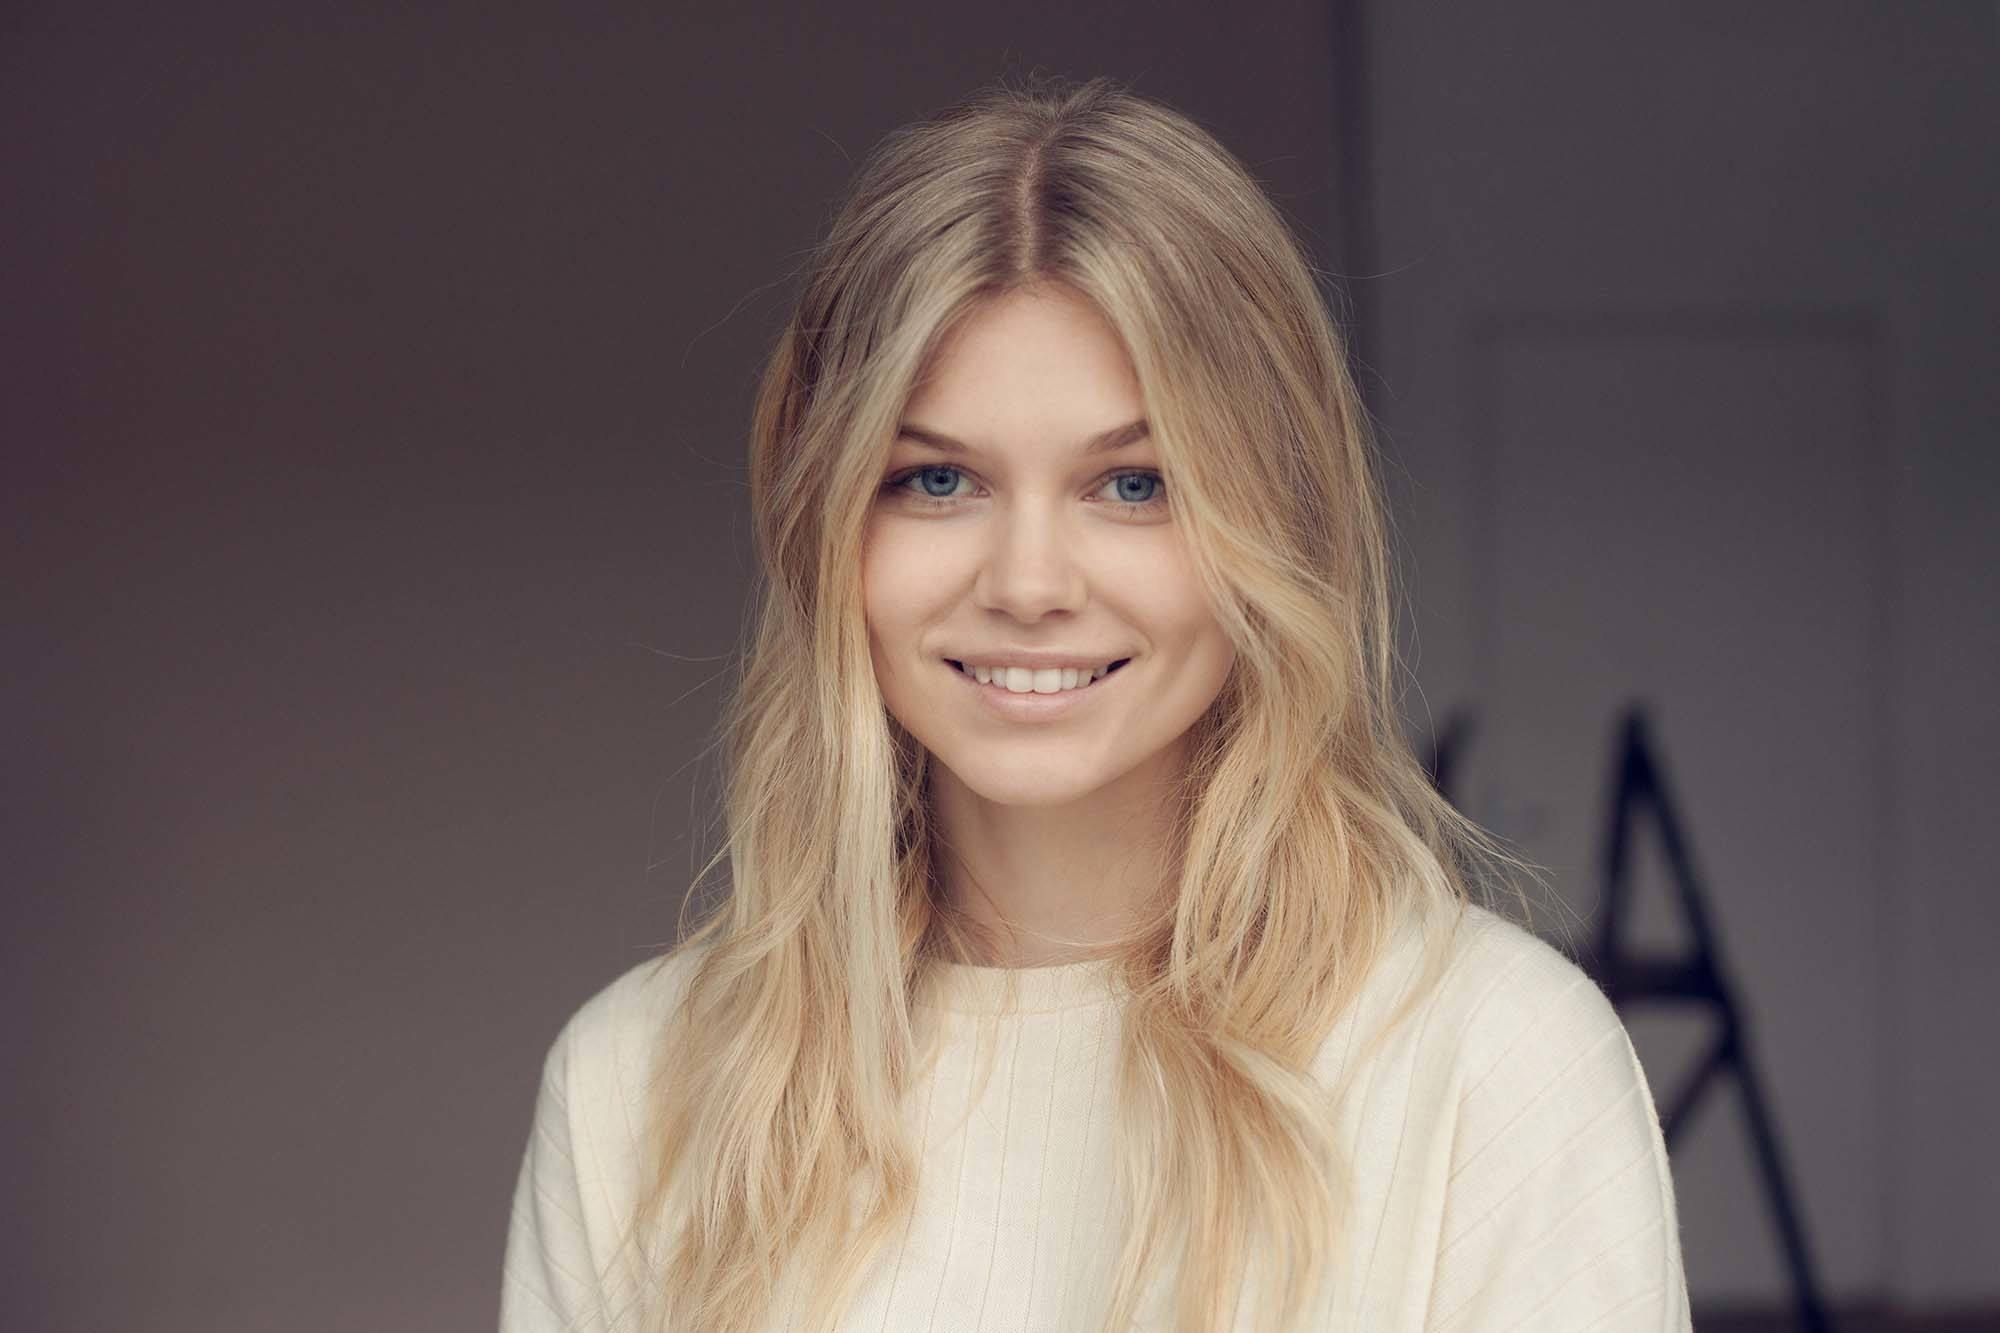 ash blonde hair: close up shot of woman with medium and light ashy blonde hair, styled into waves, wearing white top and smiling